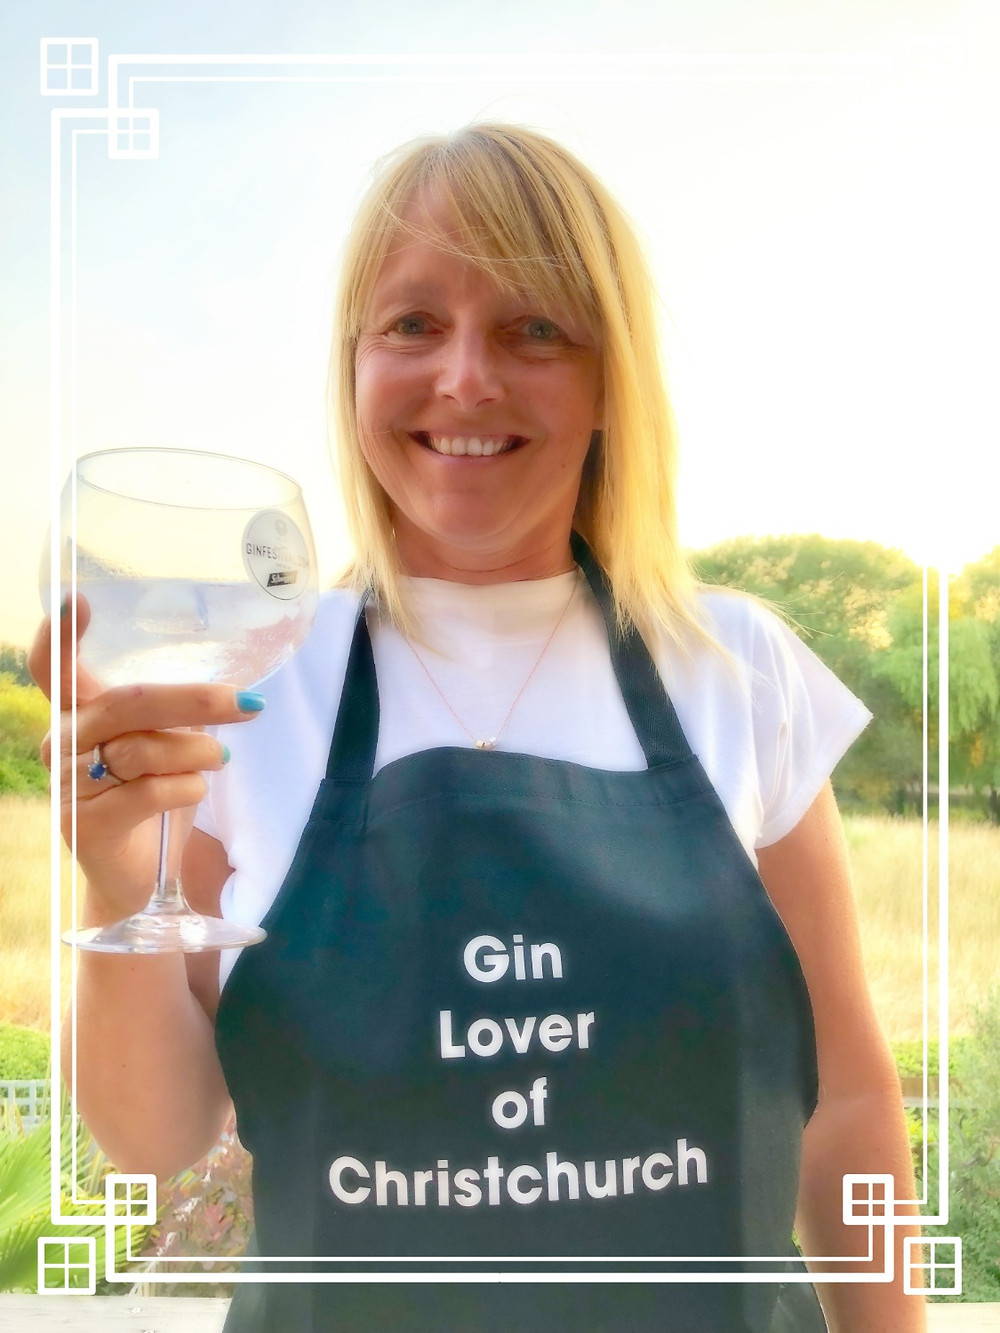 Gin Lover of Christchurch